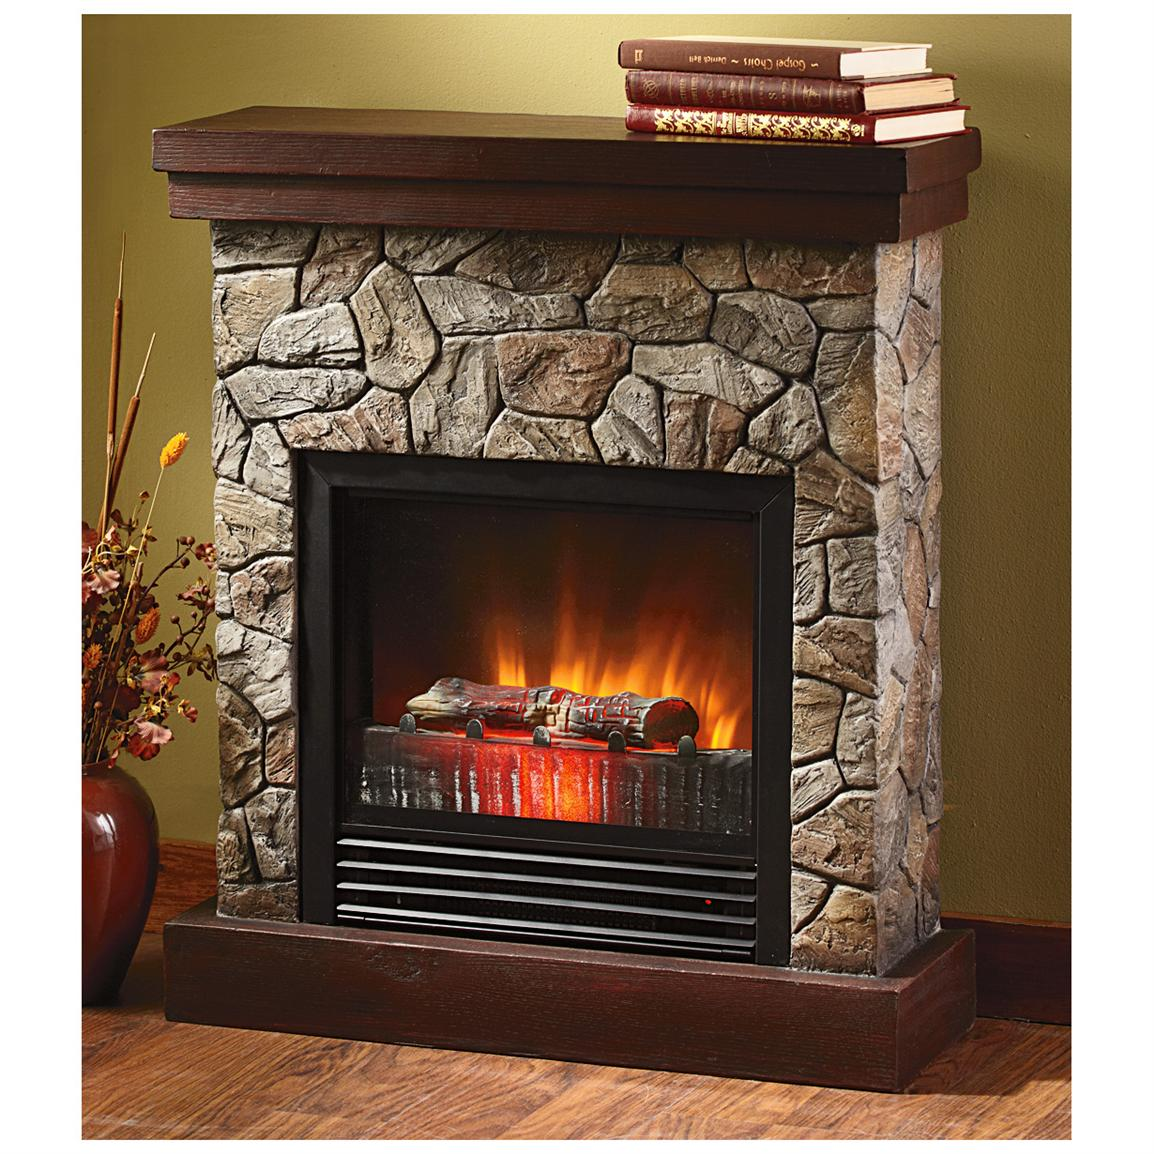 Stone electric fireplace for modern rustic home designs for Bedroom electric fireplace